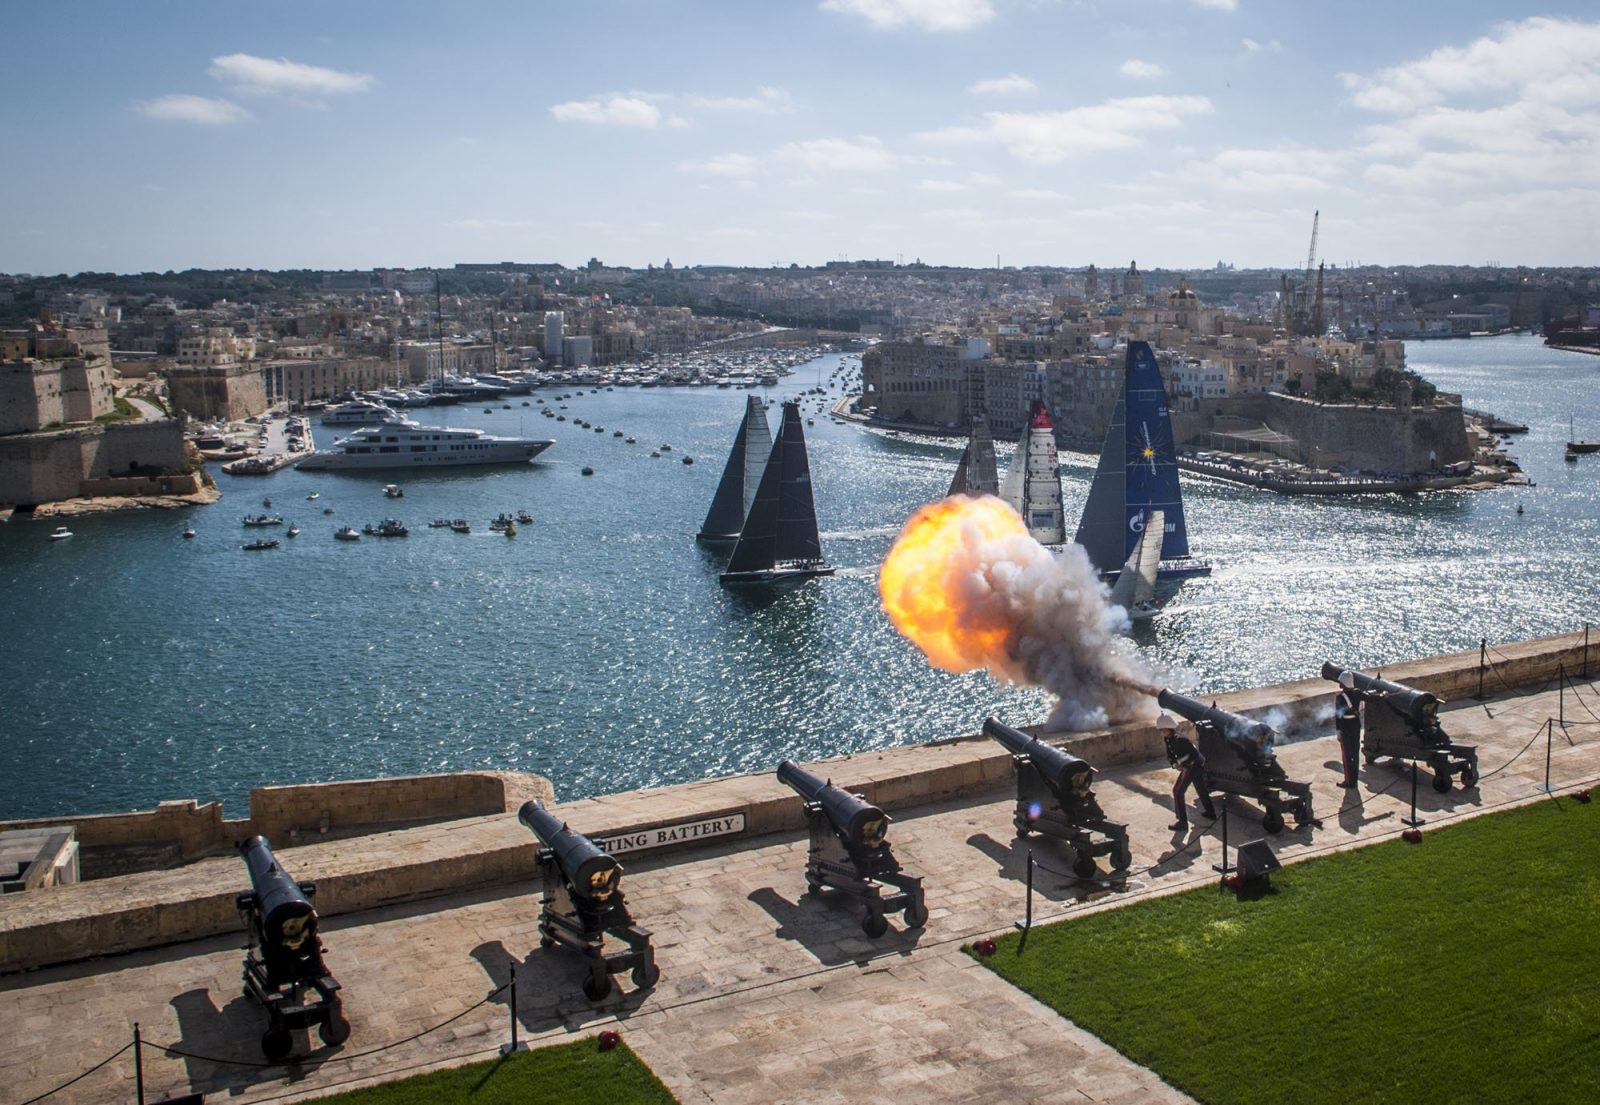 A fortified gem in the Mediterranean: Discover Valletta